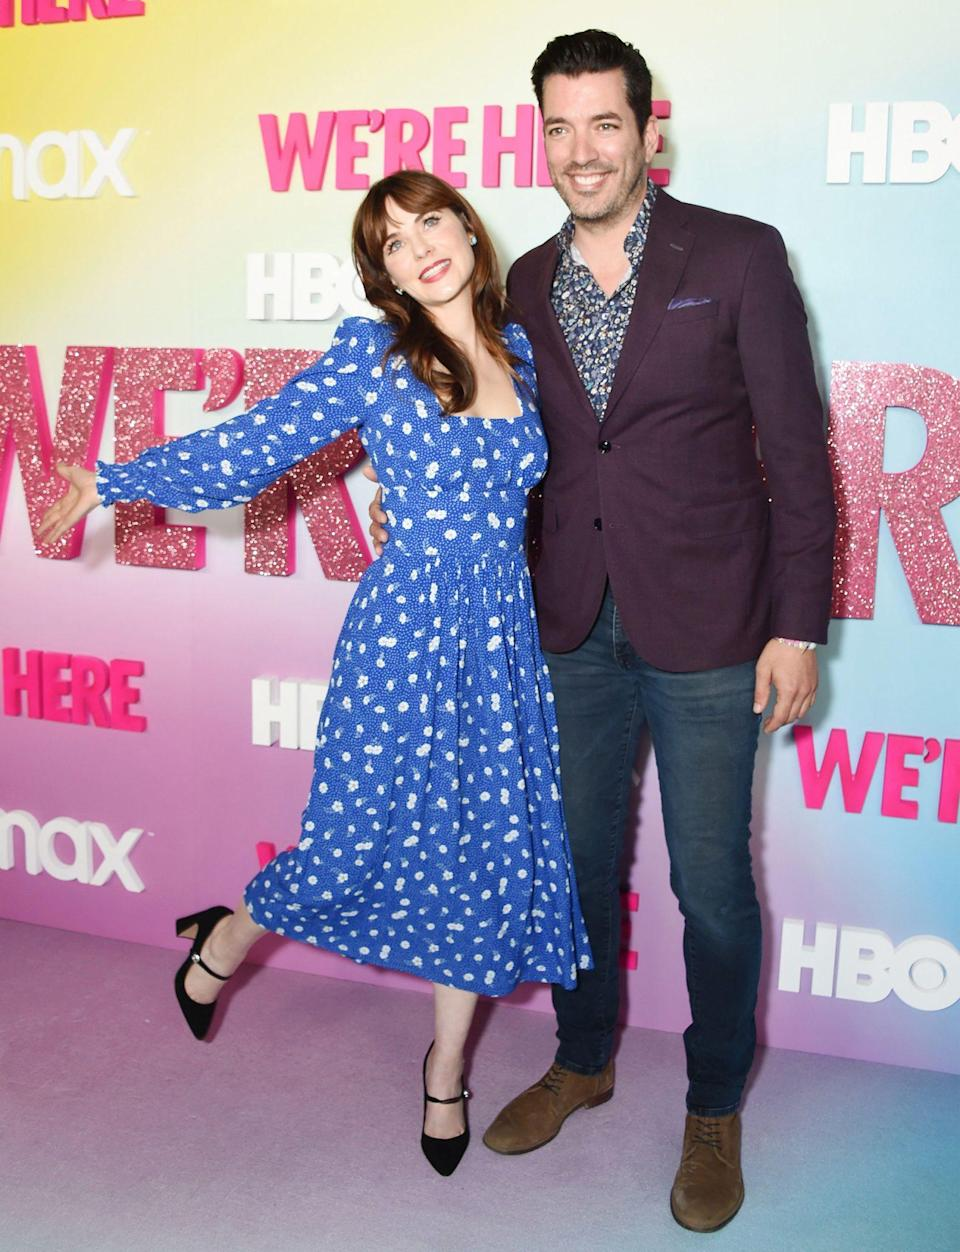 <p>Zooey Deschanel and boyfriend Jonathan Scott are delighted to be at the <em>We Are Here</em> season 2 premiere in L.A. on Oct. 8.</p>